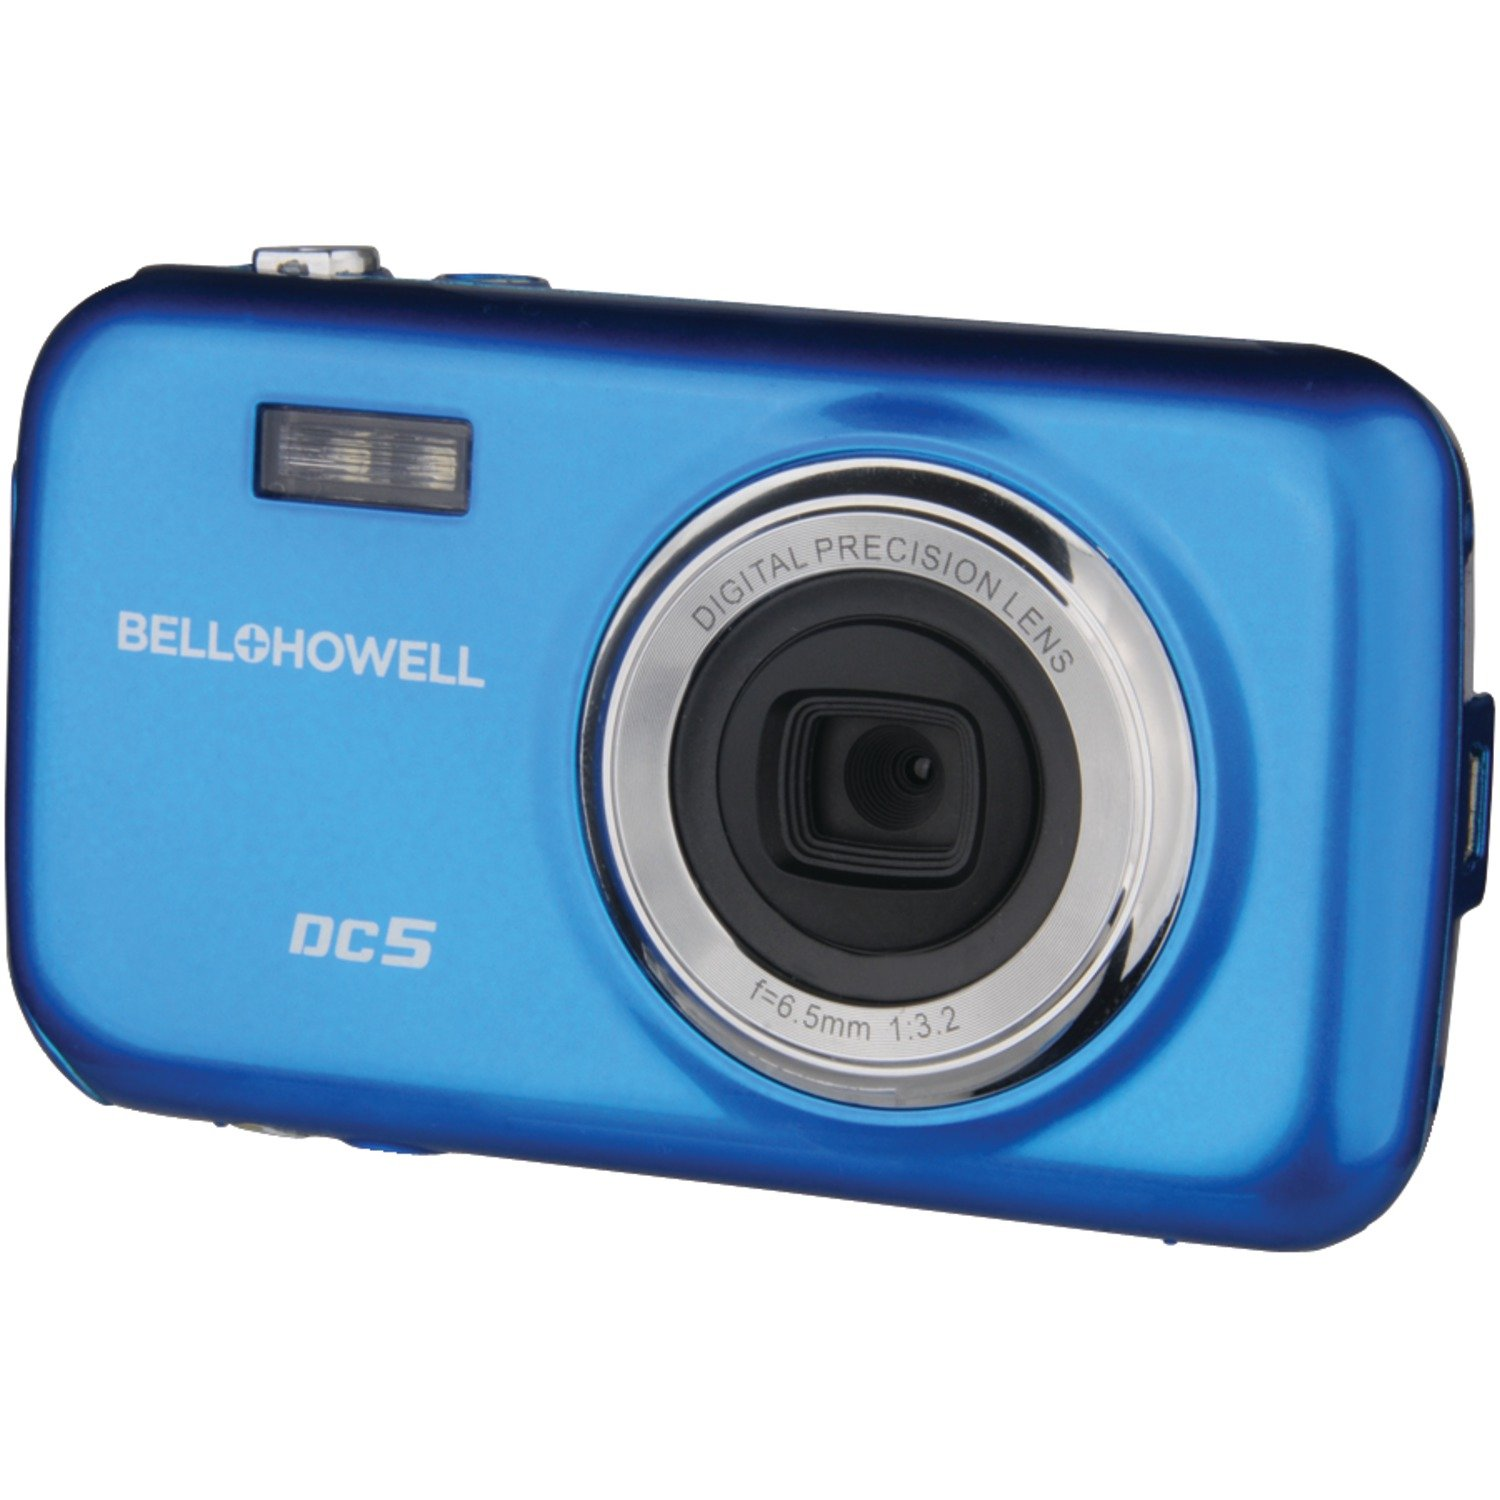 Amazon.com : Bell+Howell DC5-BL 5MP Digital Camera with 1.8-Inch LCD (Blue)  : Point And Shoot Digital Cameras : Camera & Photo